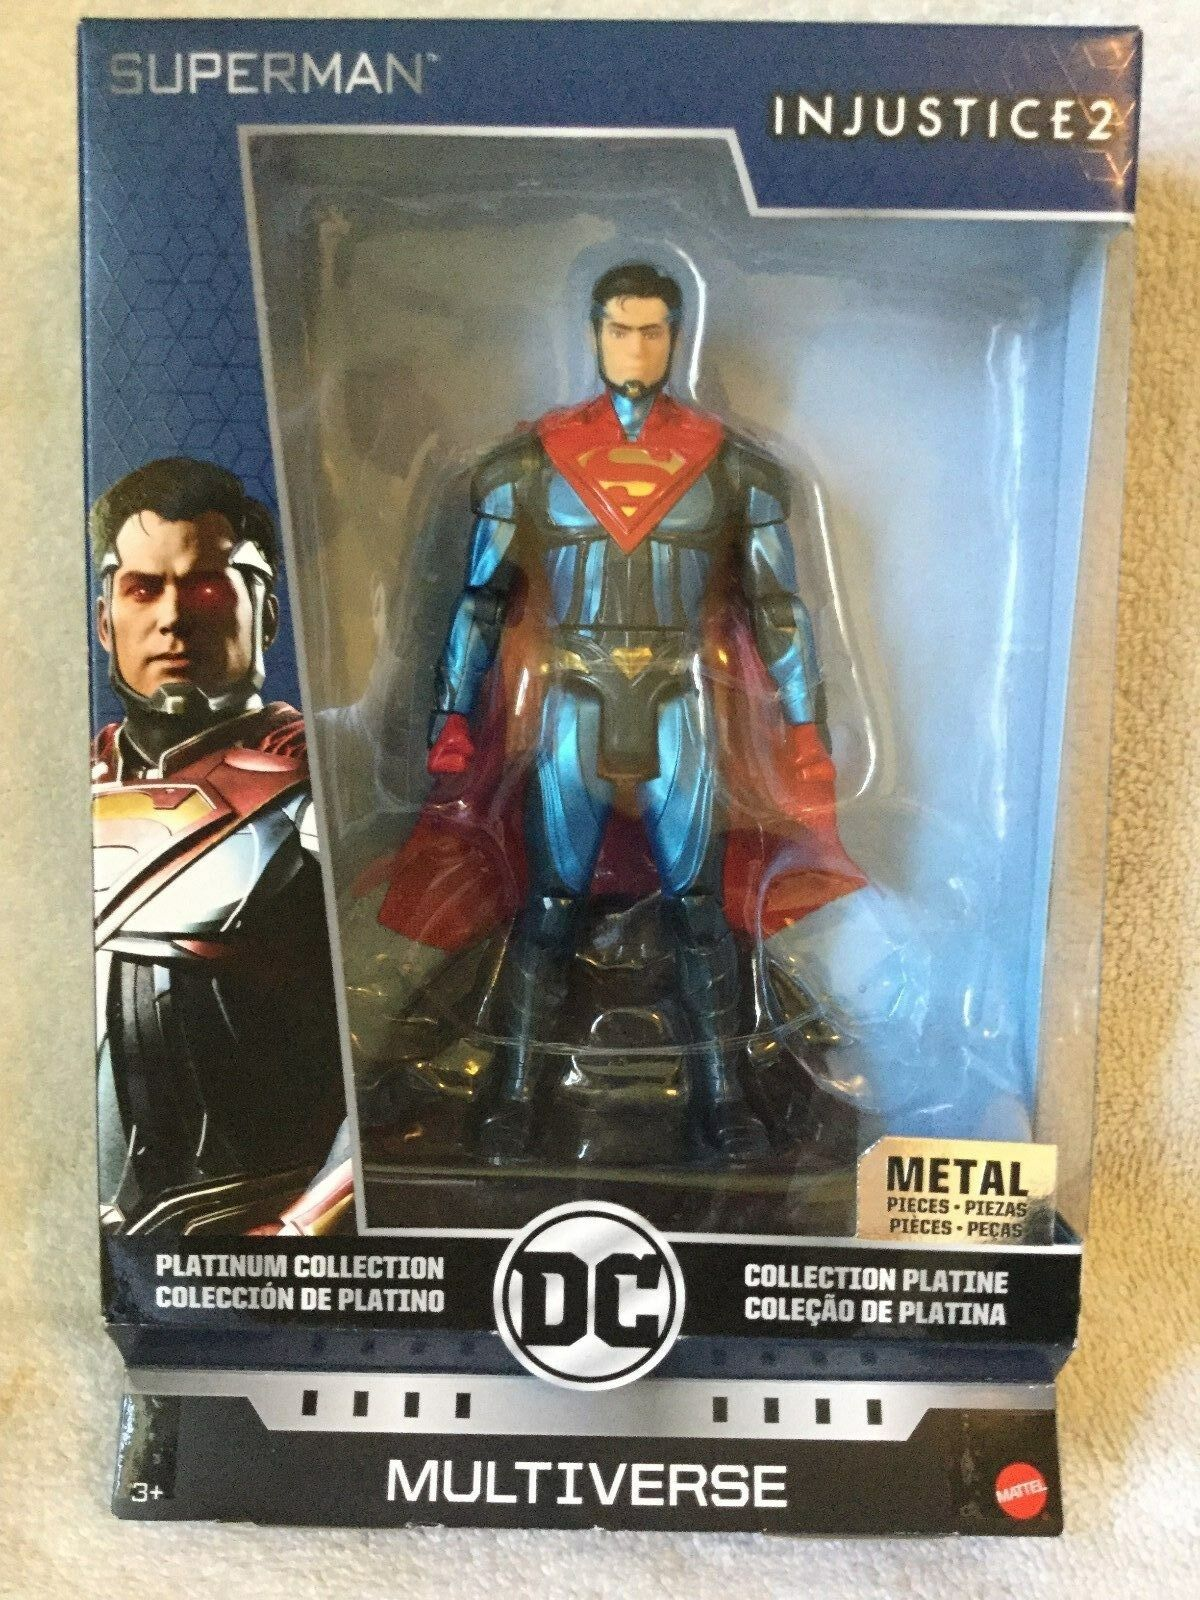 Dc multiversum 2018 exklusive superman.